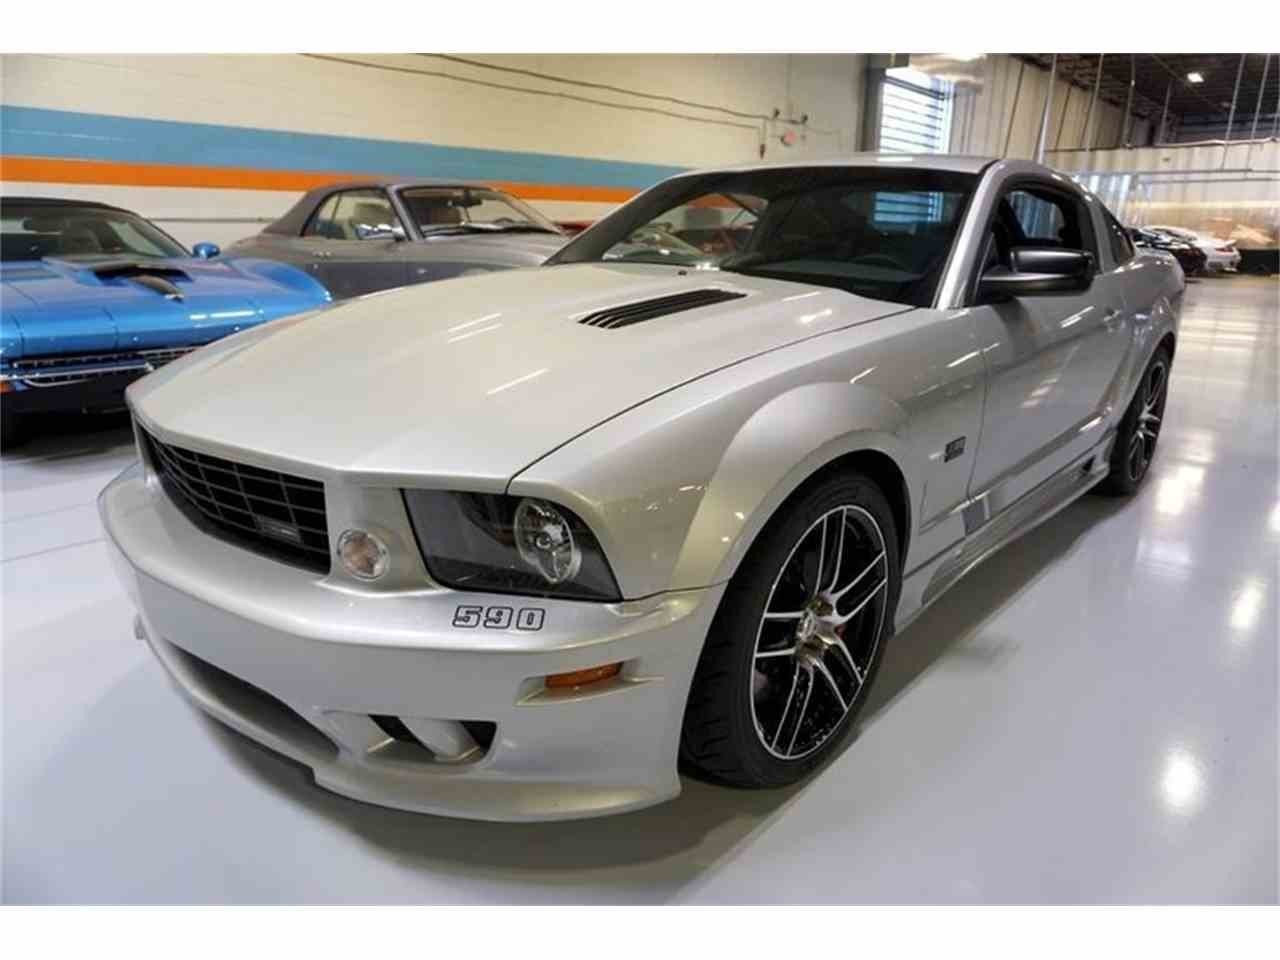 Large Picture of '06 Ford Mustang located in Ohio - $34,990.00 Offered by R&H Motor Car Group - MC5Z